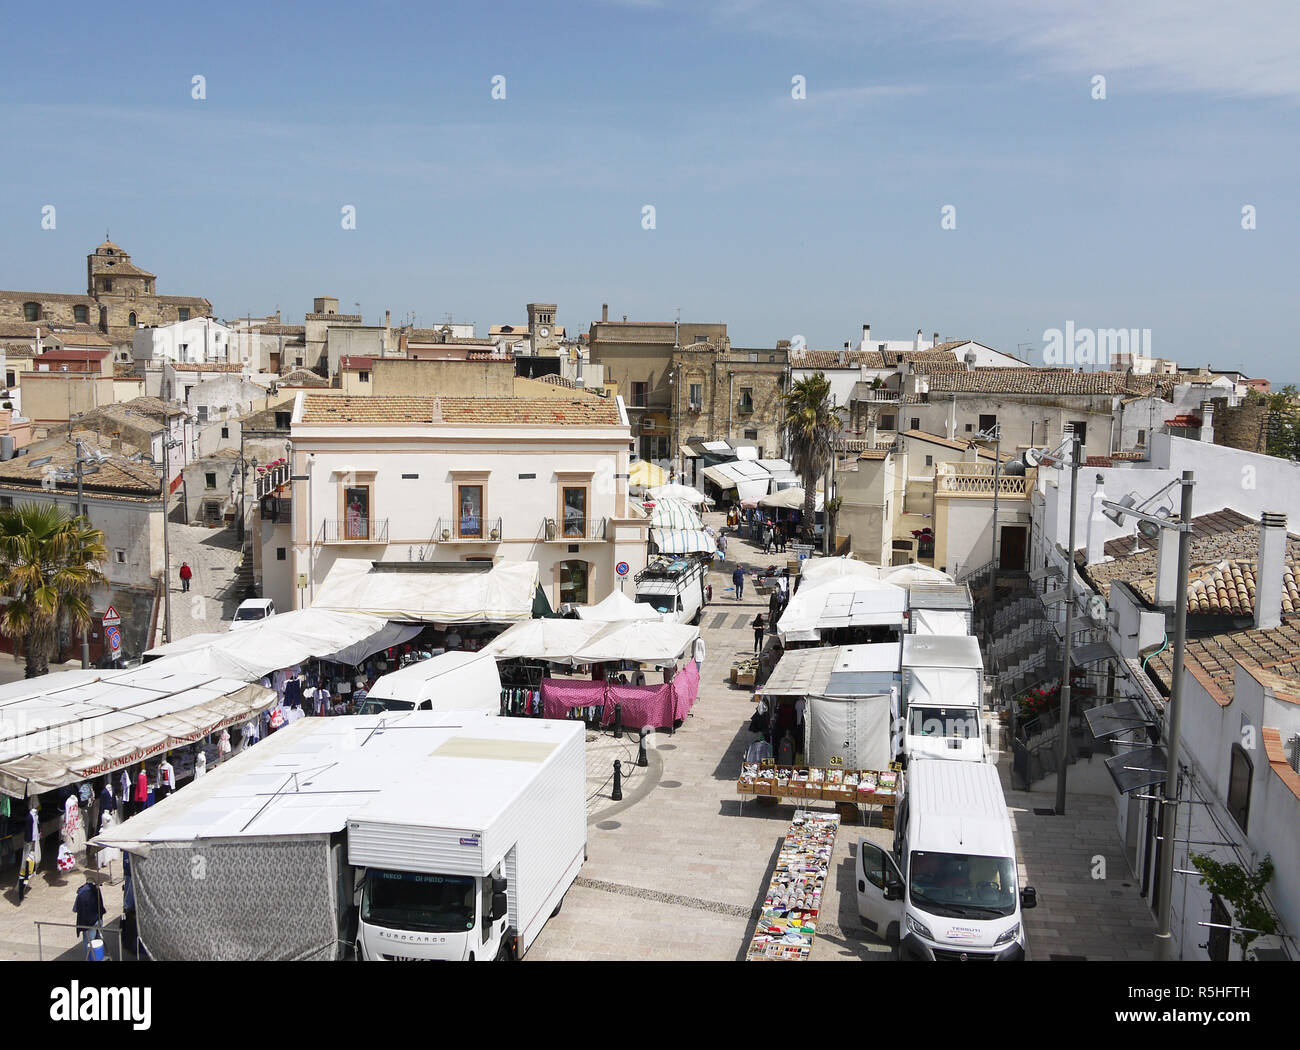 The hilltop town of Miglionico in Basilicata, Southern Italy on market day Stock Photo